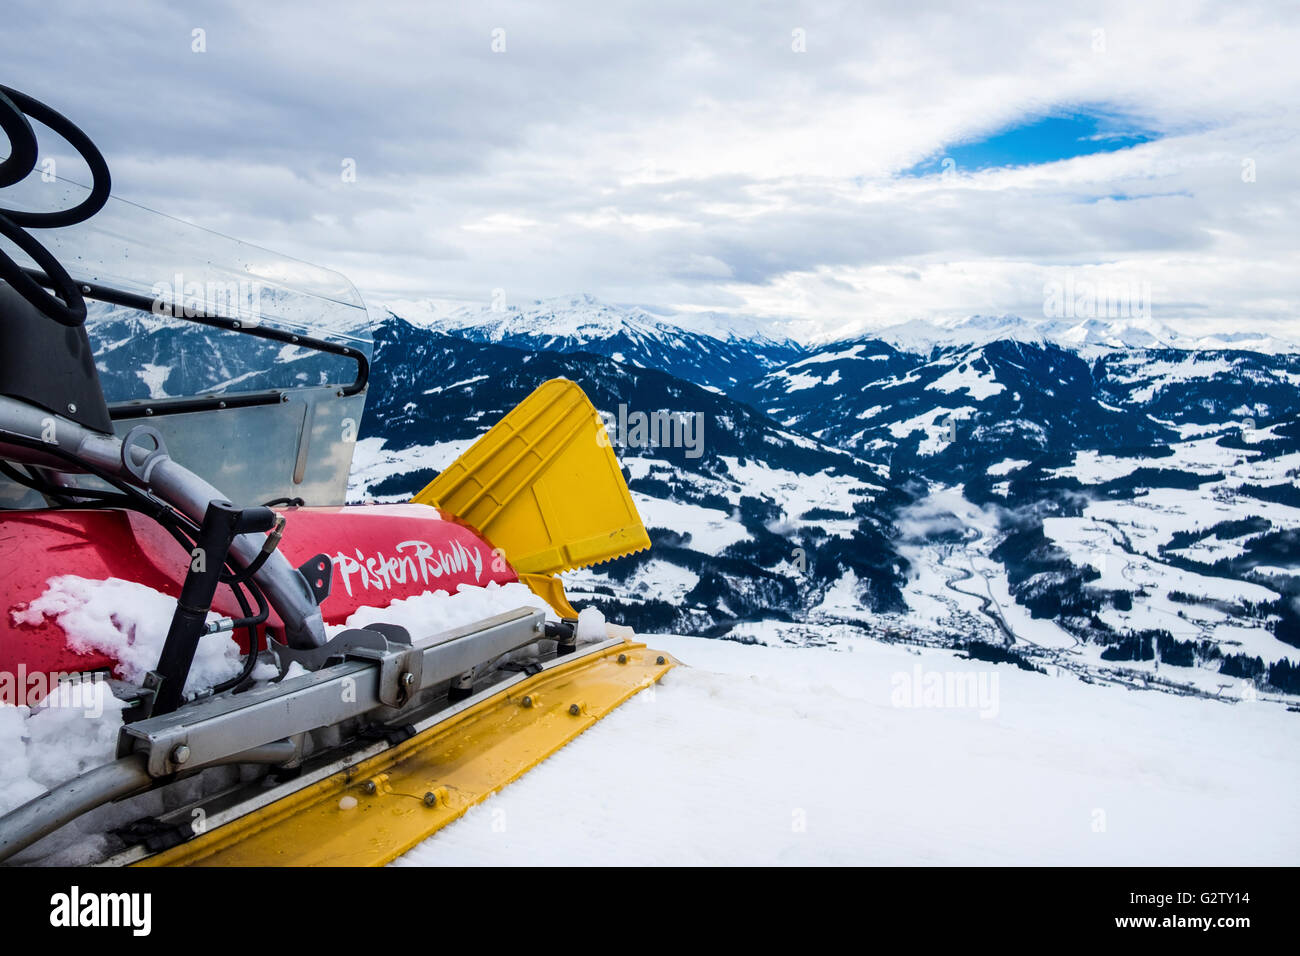 PistenBully piste groomer maintaining the slopes in Brixen / Soll in the SkiWelt area in Austria. - Stock Image